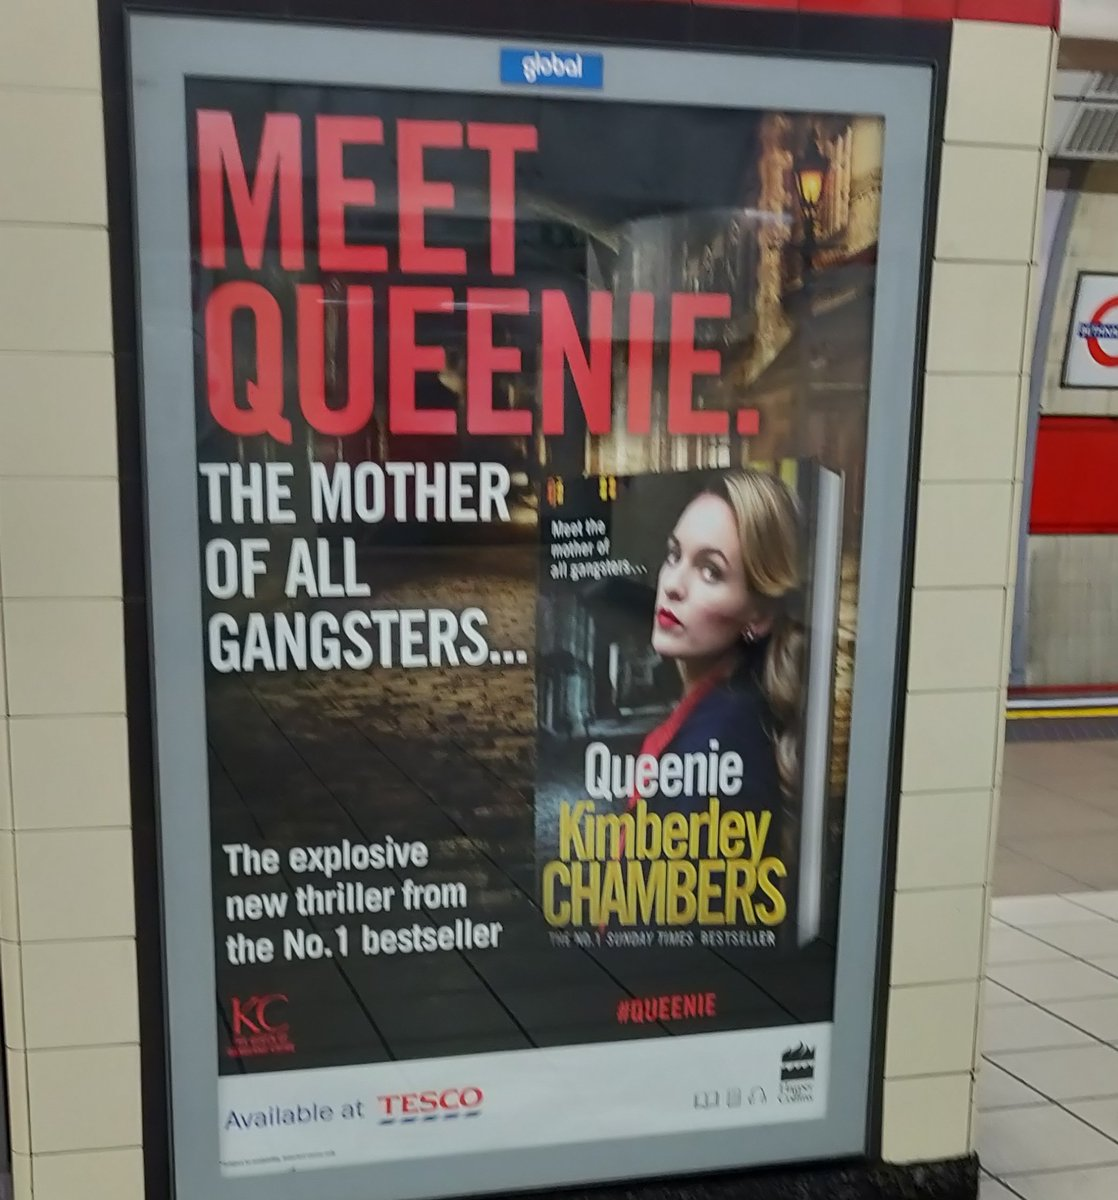 I'm confused. @CandiceC_W already introduced us to Queenie and this isn't her